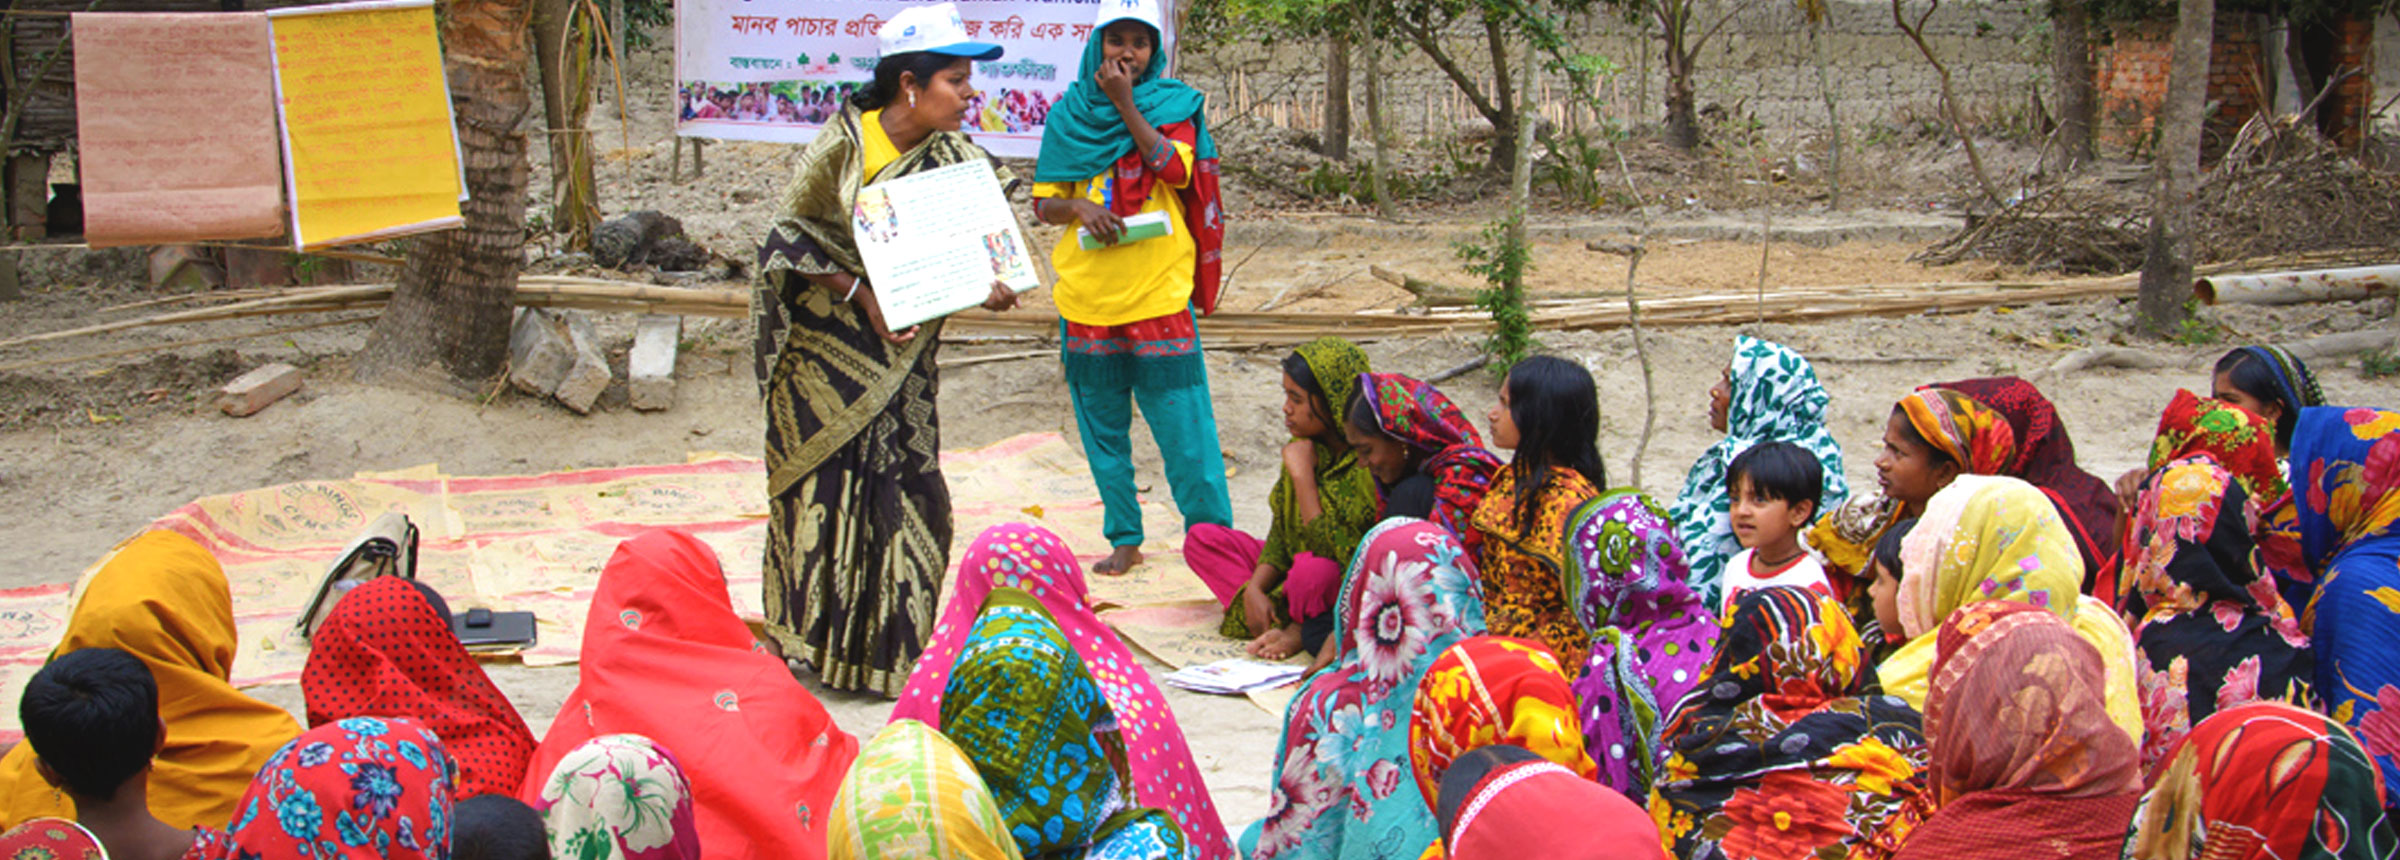 Anti-trafficking trainer addressing group of Bangladeshi women